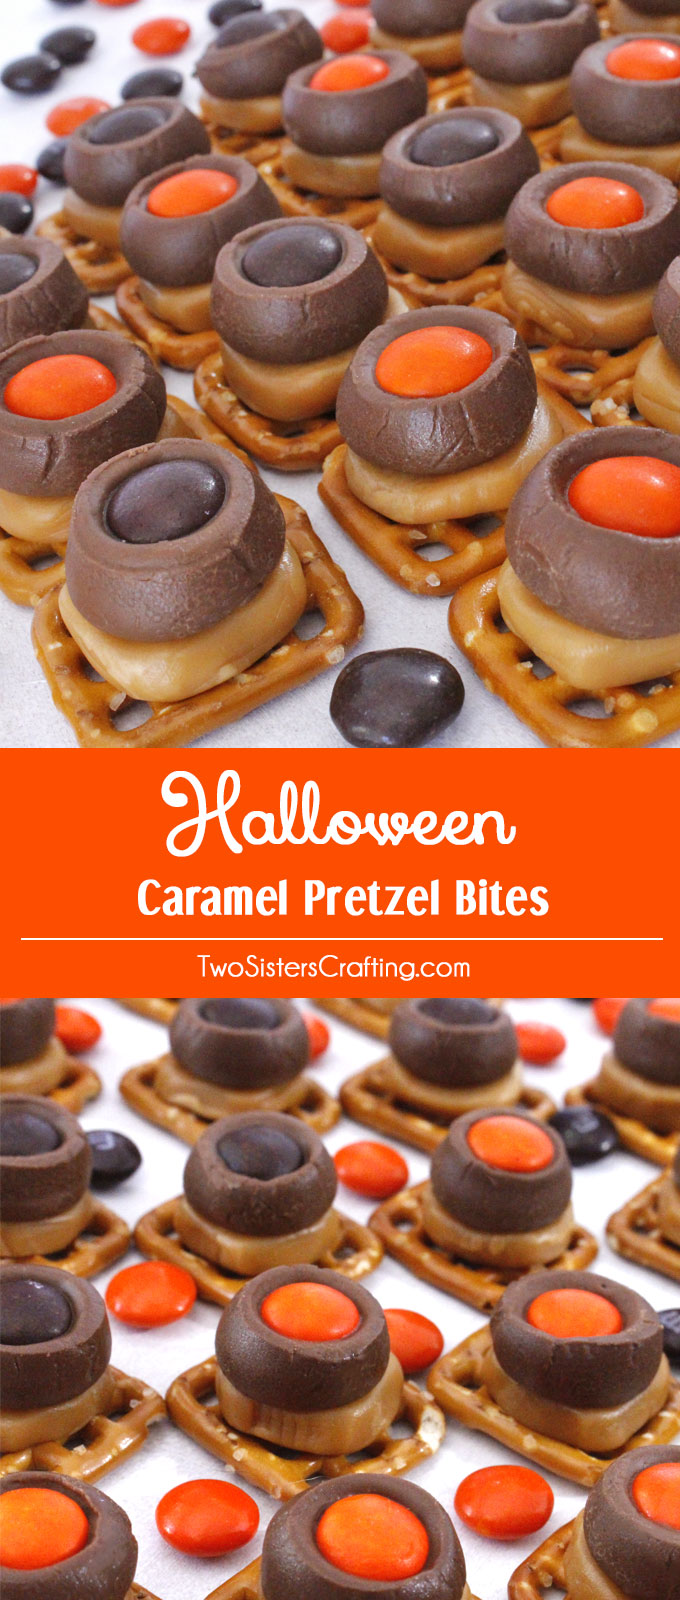 These Halloween Caramel Pretzel Bites are a great Halloween treat. Sweet, salty, crunchy and delicious they are an easy to make and yummy Halloween dessert that both you and your family will love. Follow us for more Halloween Food ideas.